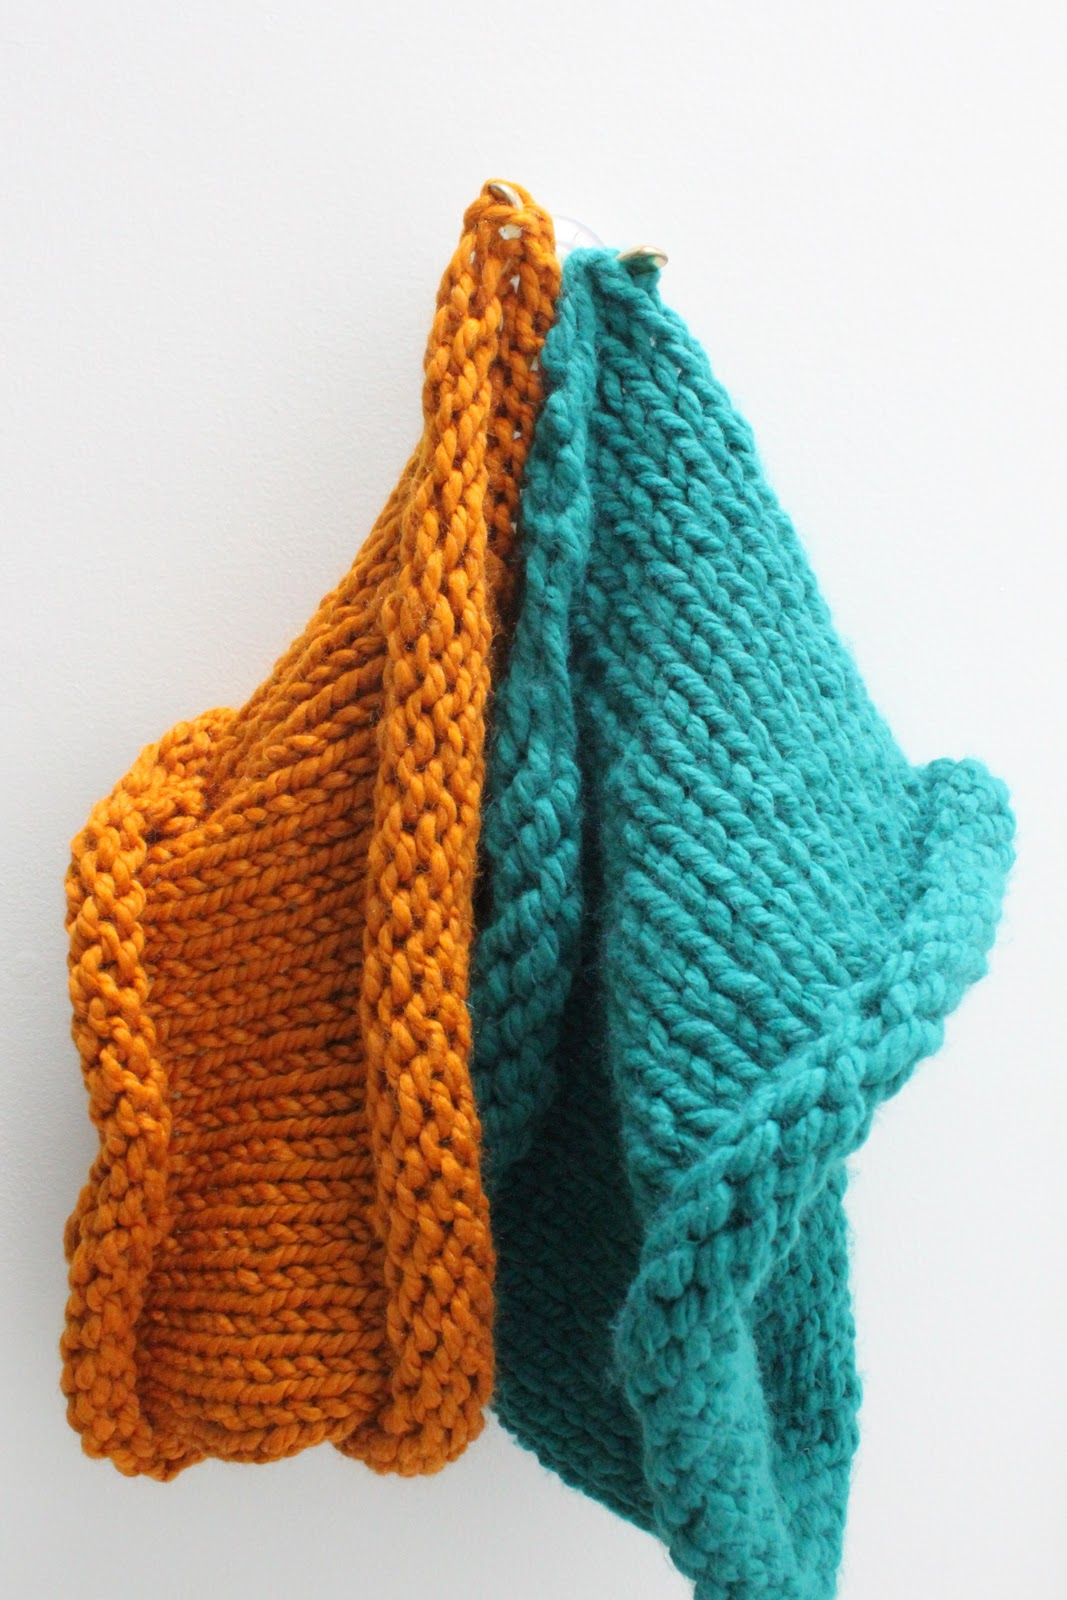 Knit Cowl of the Chunky Variety {A Tutorial} - Smashed Peas & Carrots